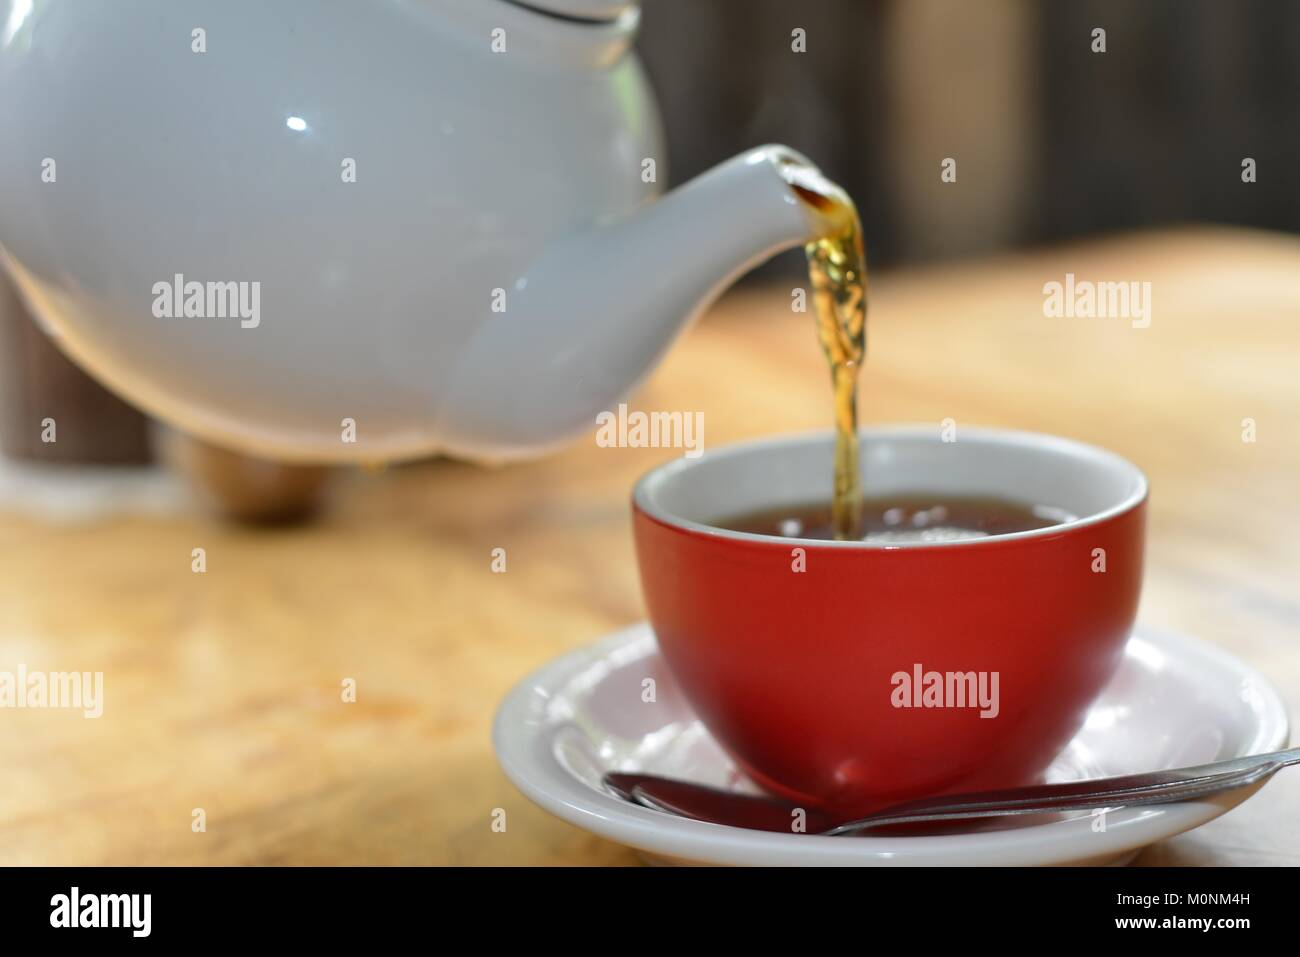 Black Tea Being Poured White Ceramic Teapot Into A Red Cup With White Stock Photo Alamy